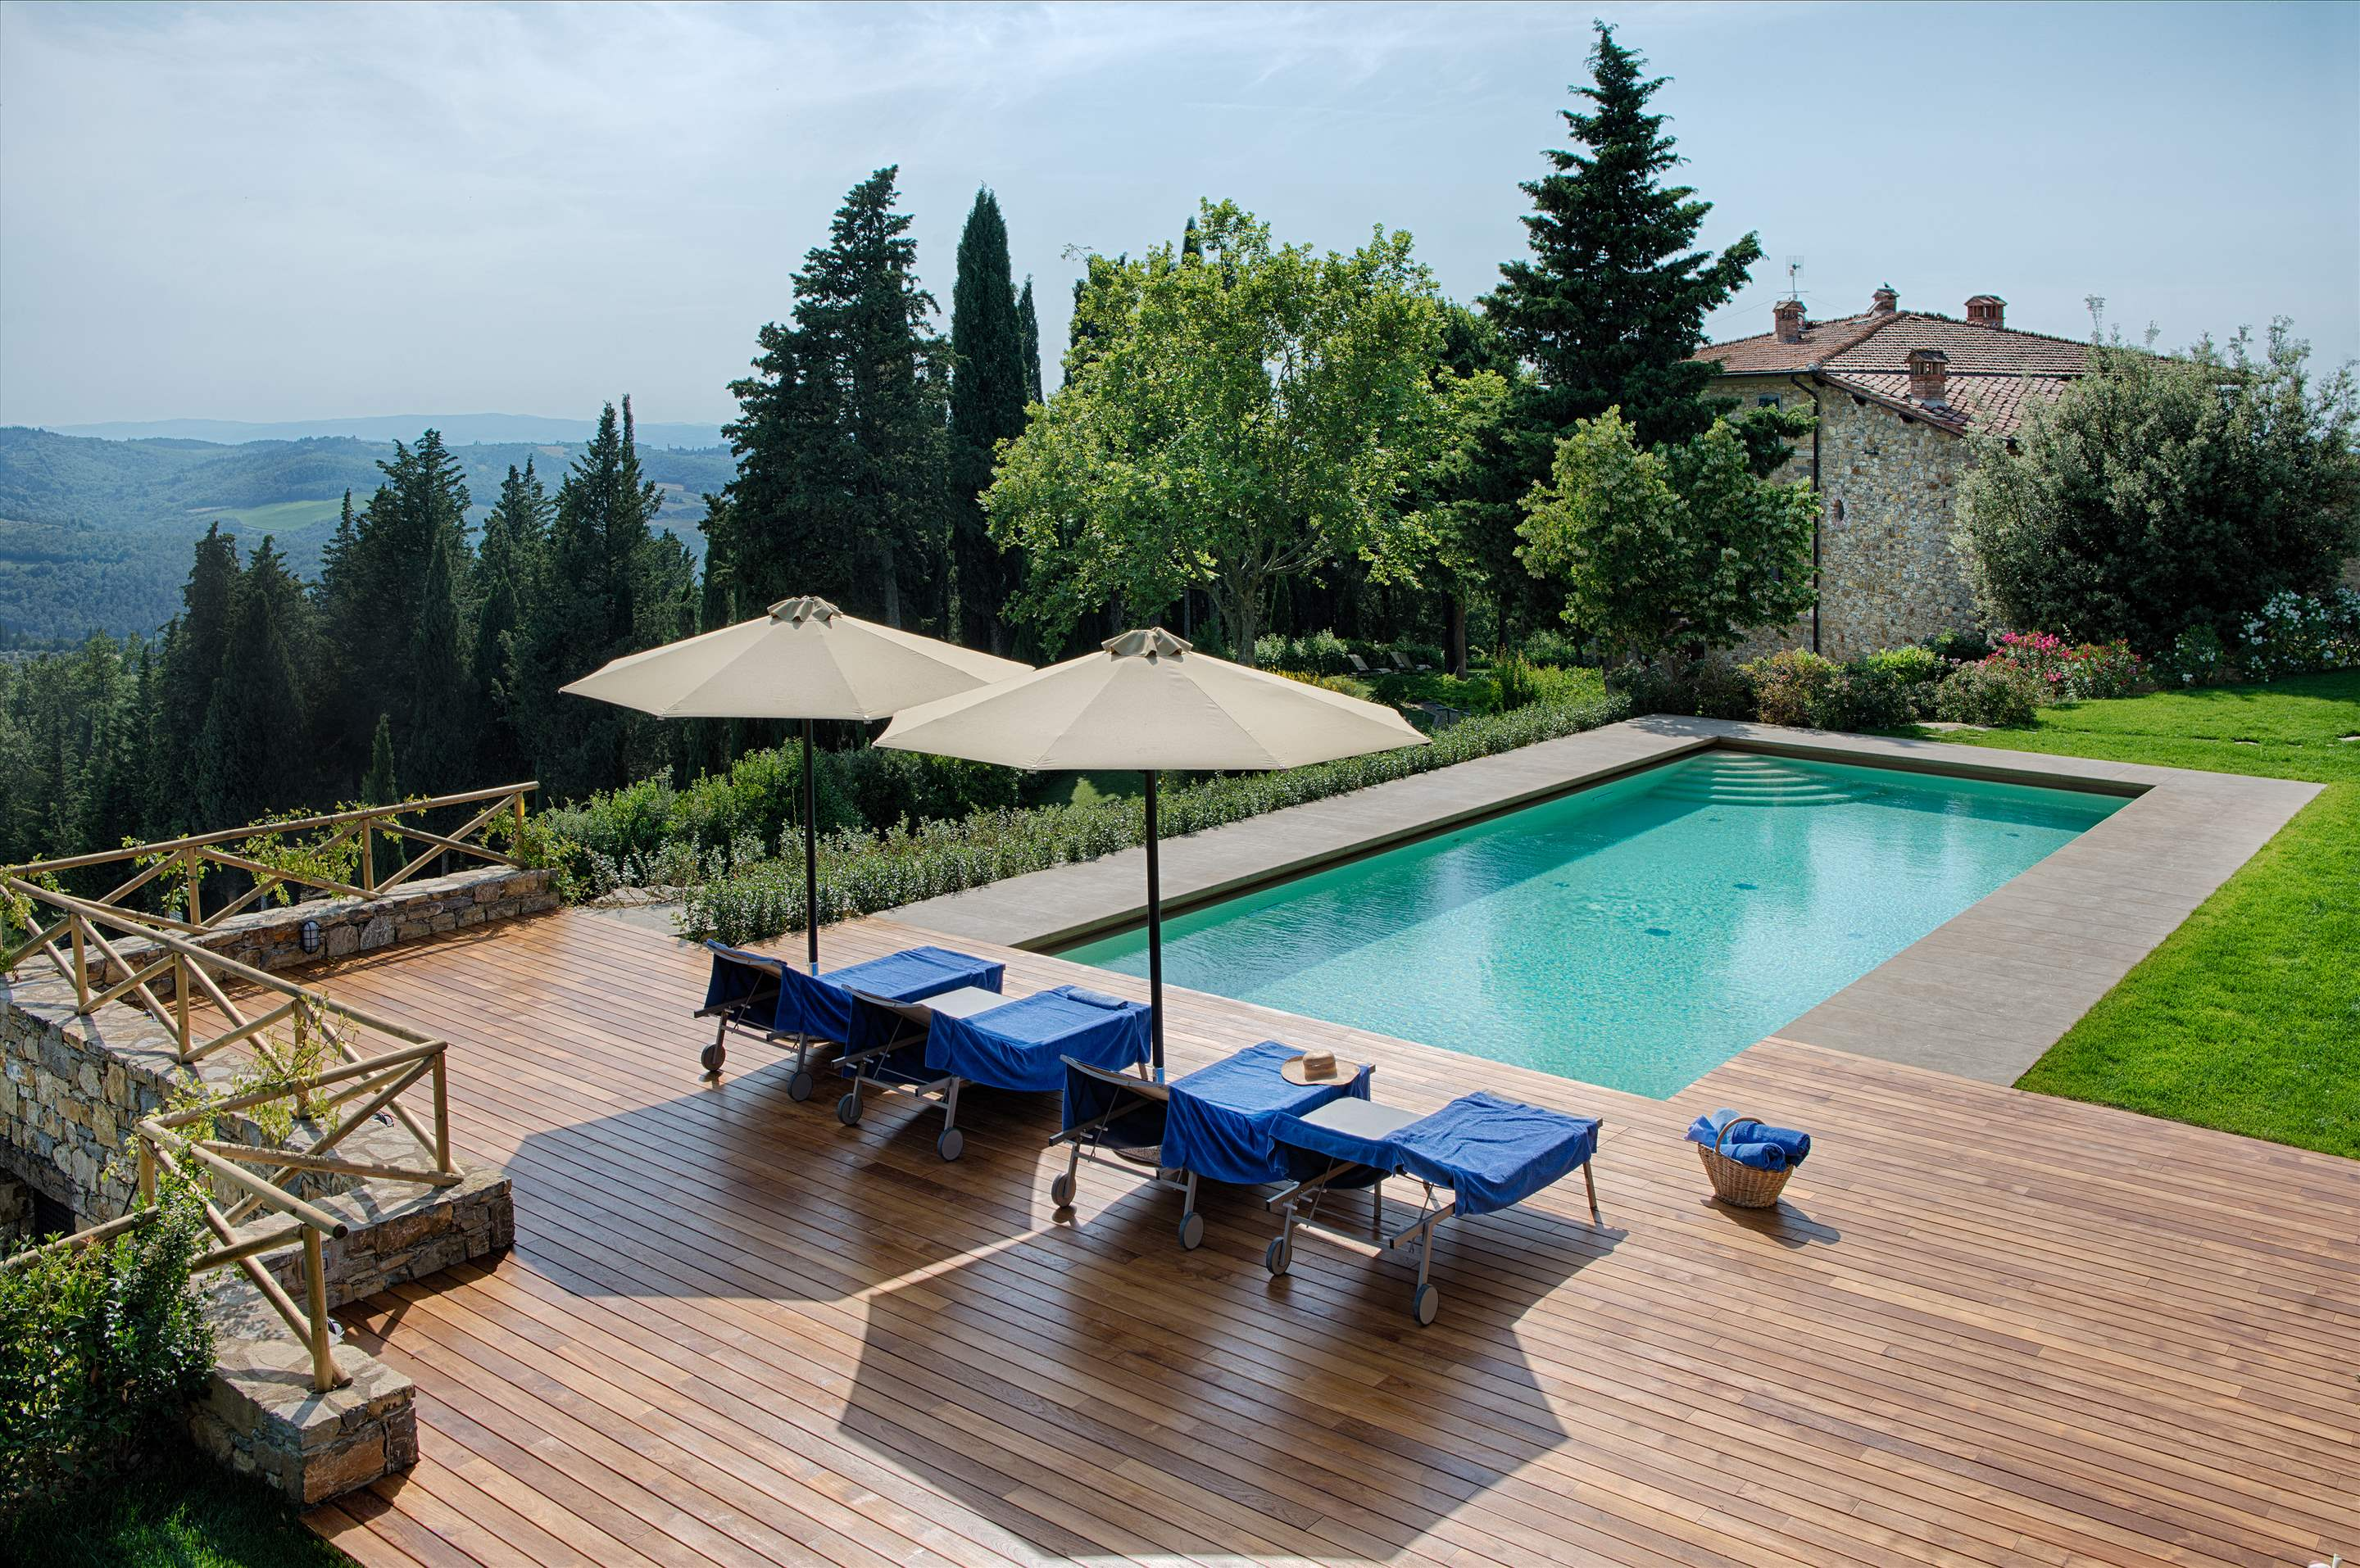 Villa La Valetta, Apt Rosa + 2 Bedrooms, 3 bedroom villa in Chianti & Countryside, Tuscany